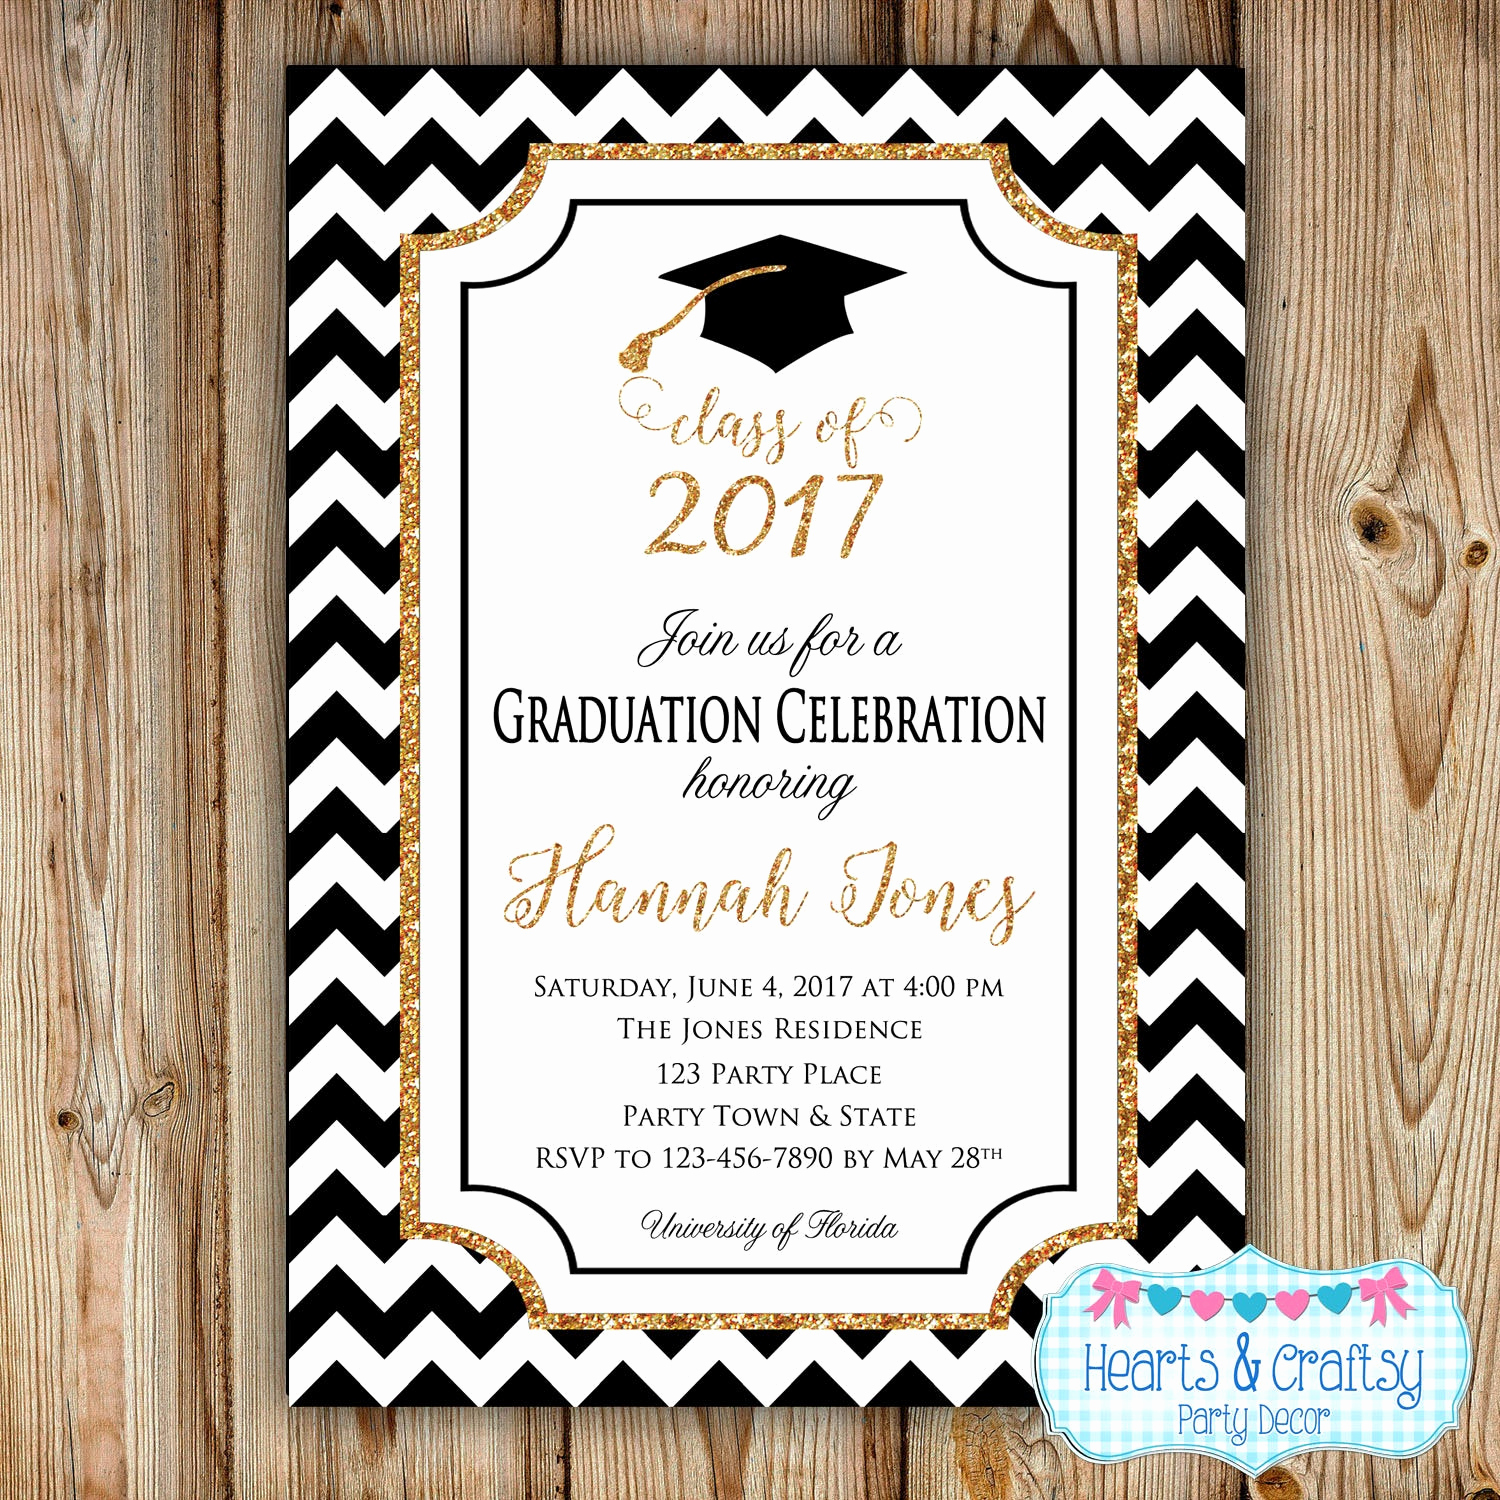 Free Graduation Party Invitation Templates Lovely Graduation Party Invitation College Graduation Invitation